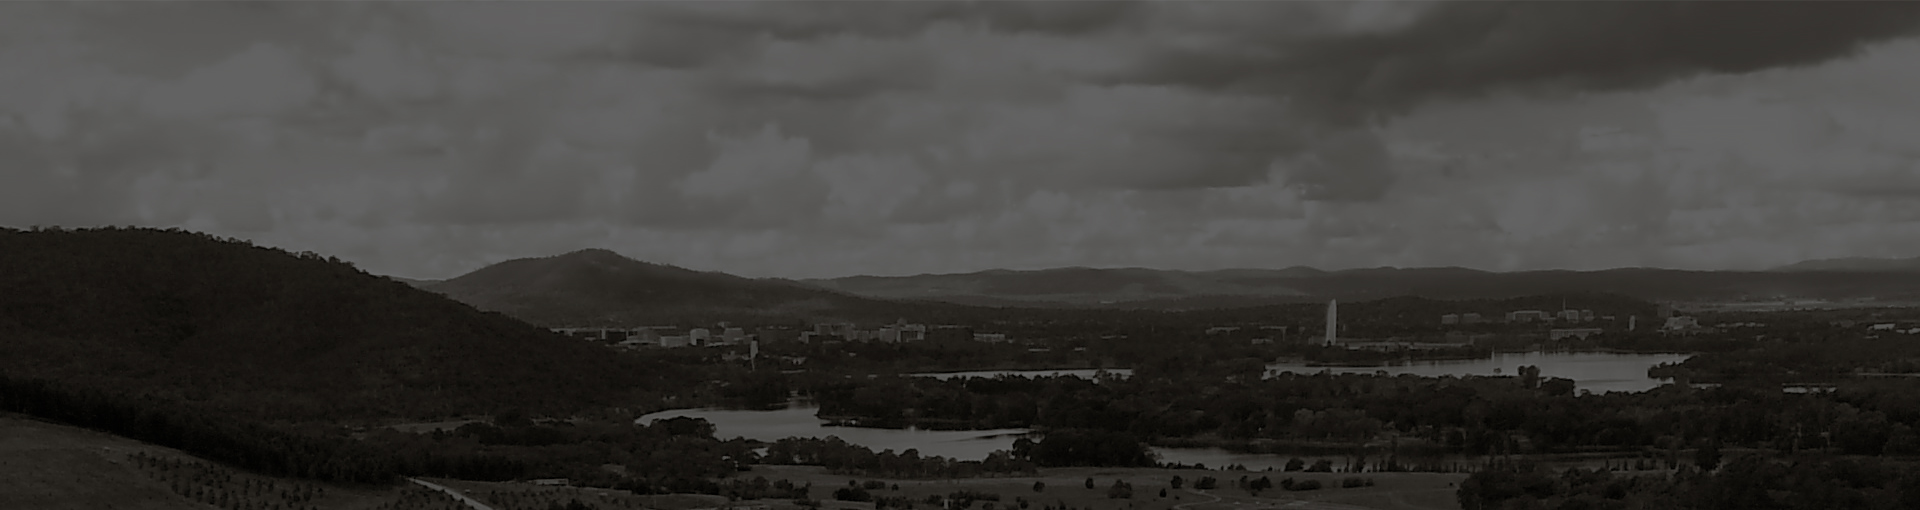 Canberra Highlands in Grayscale